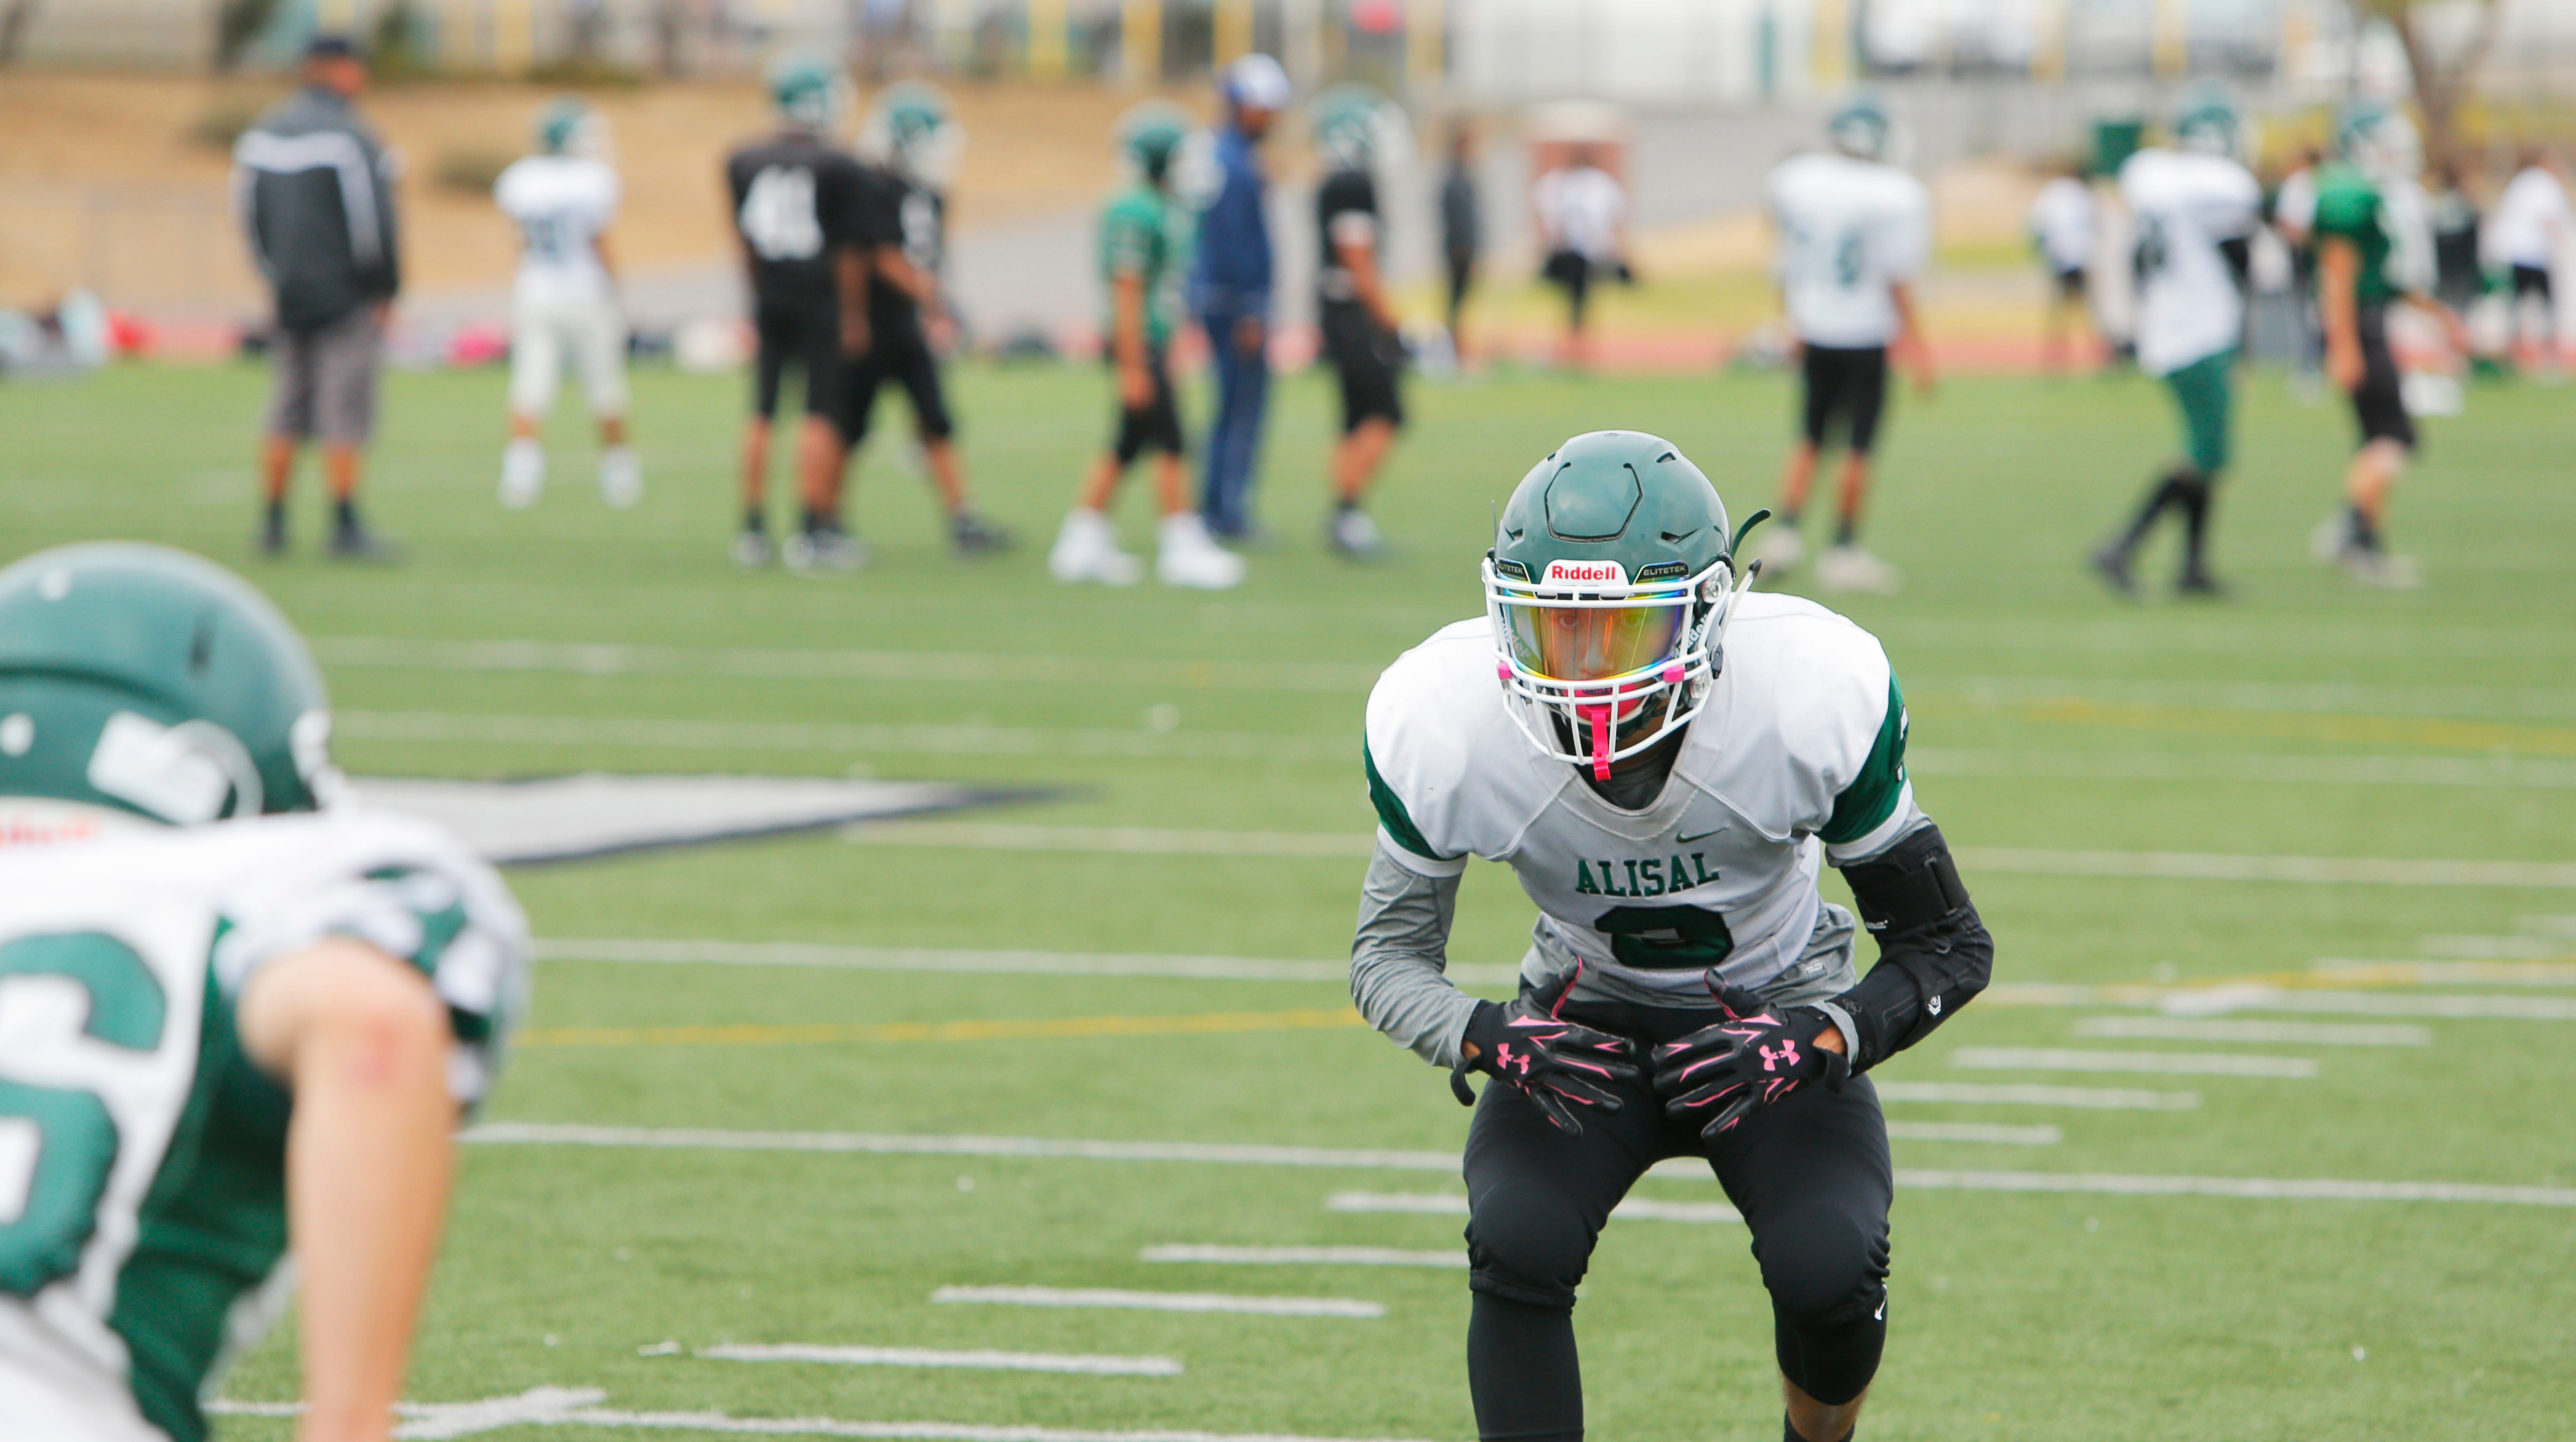 One of the best aspects of the Alisal football team last season was its defense. The unit gave up just 10 points per game during its six-game win streak to close the regular season and into the playoffs.